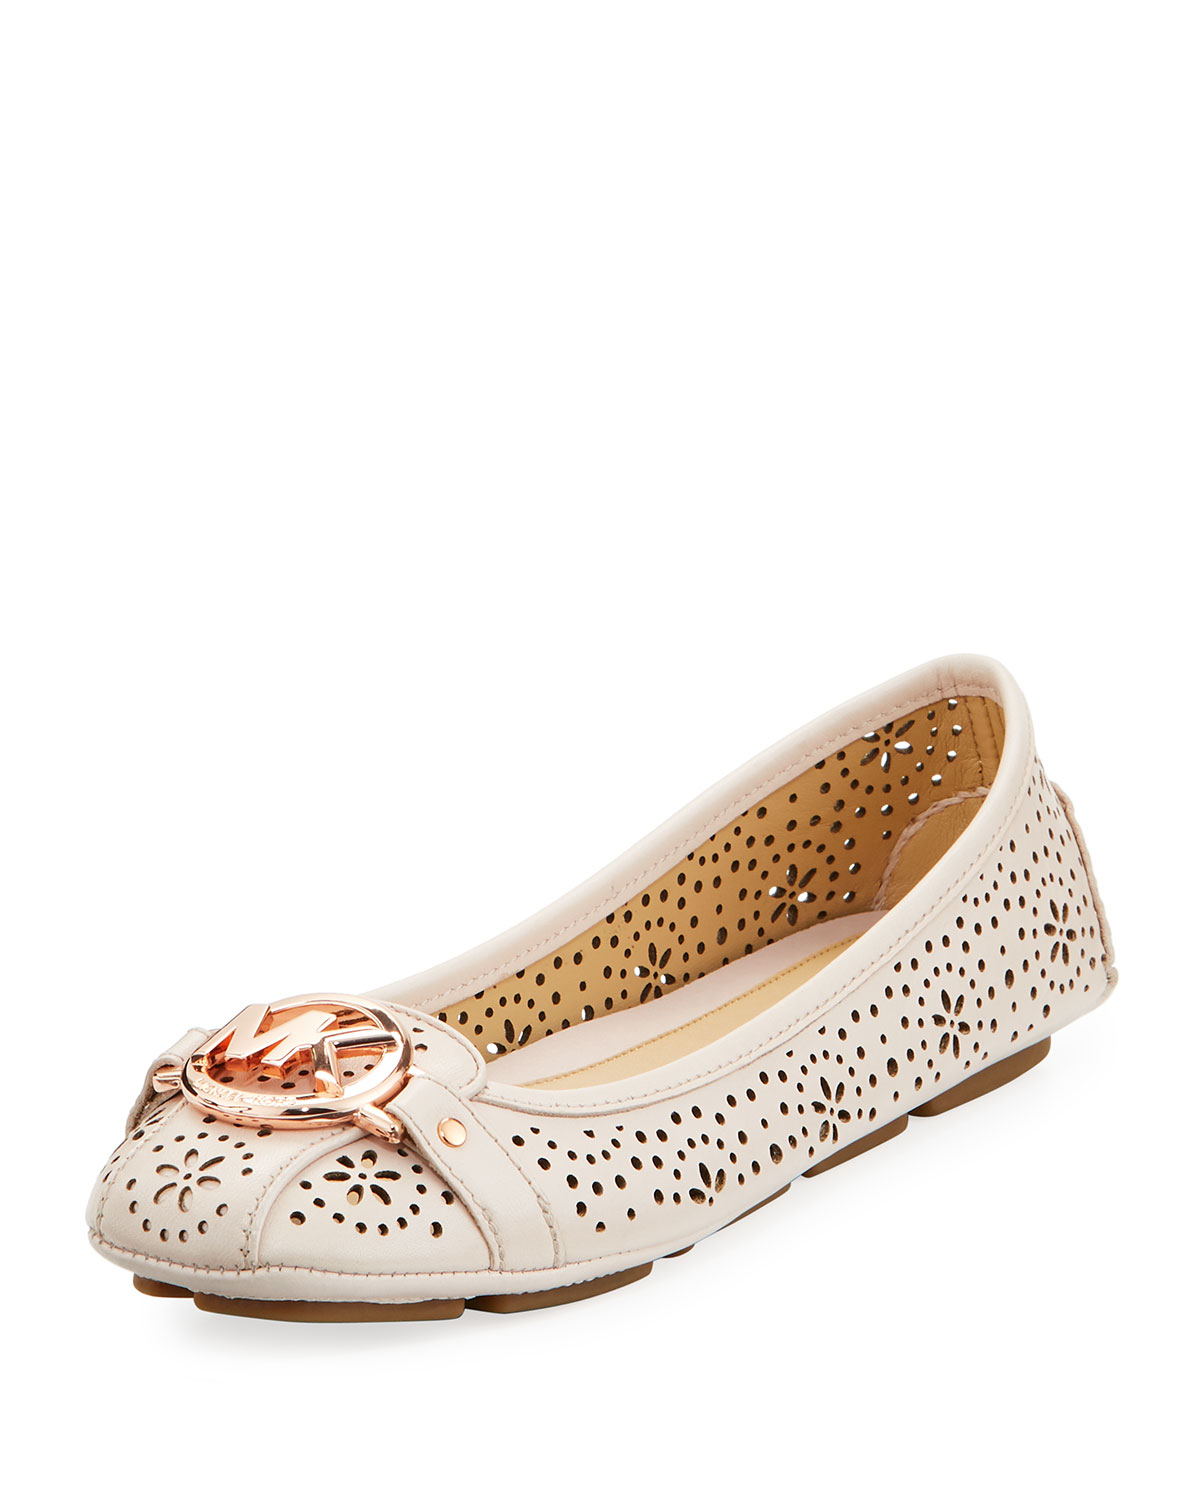 eaf975aac3aa MICHAEL Michael Kors Fulton Perforated Leather Logo Moccasin ...